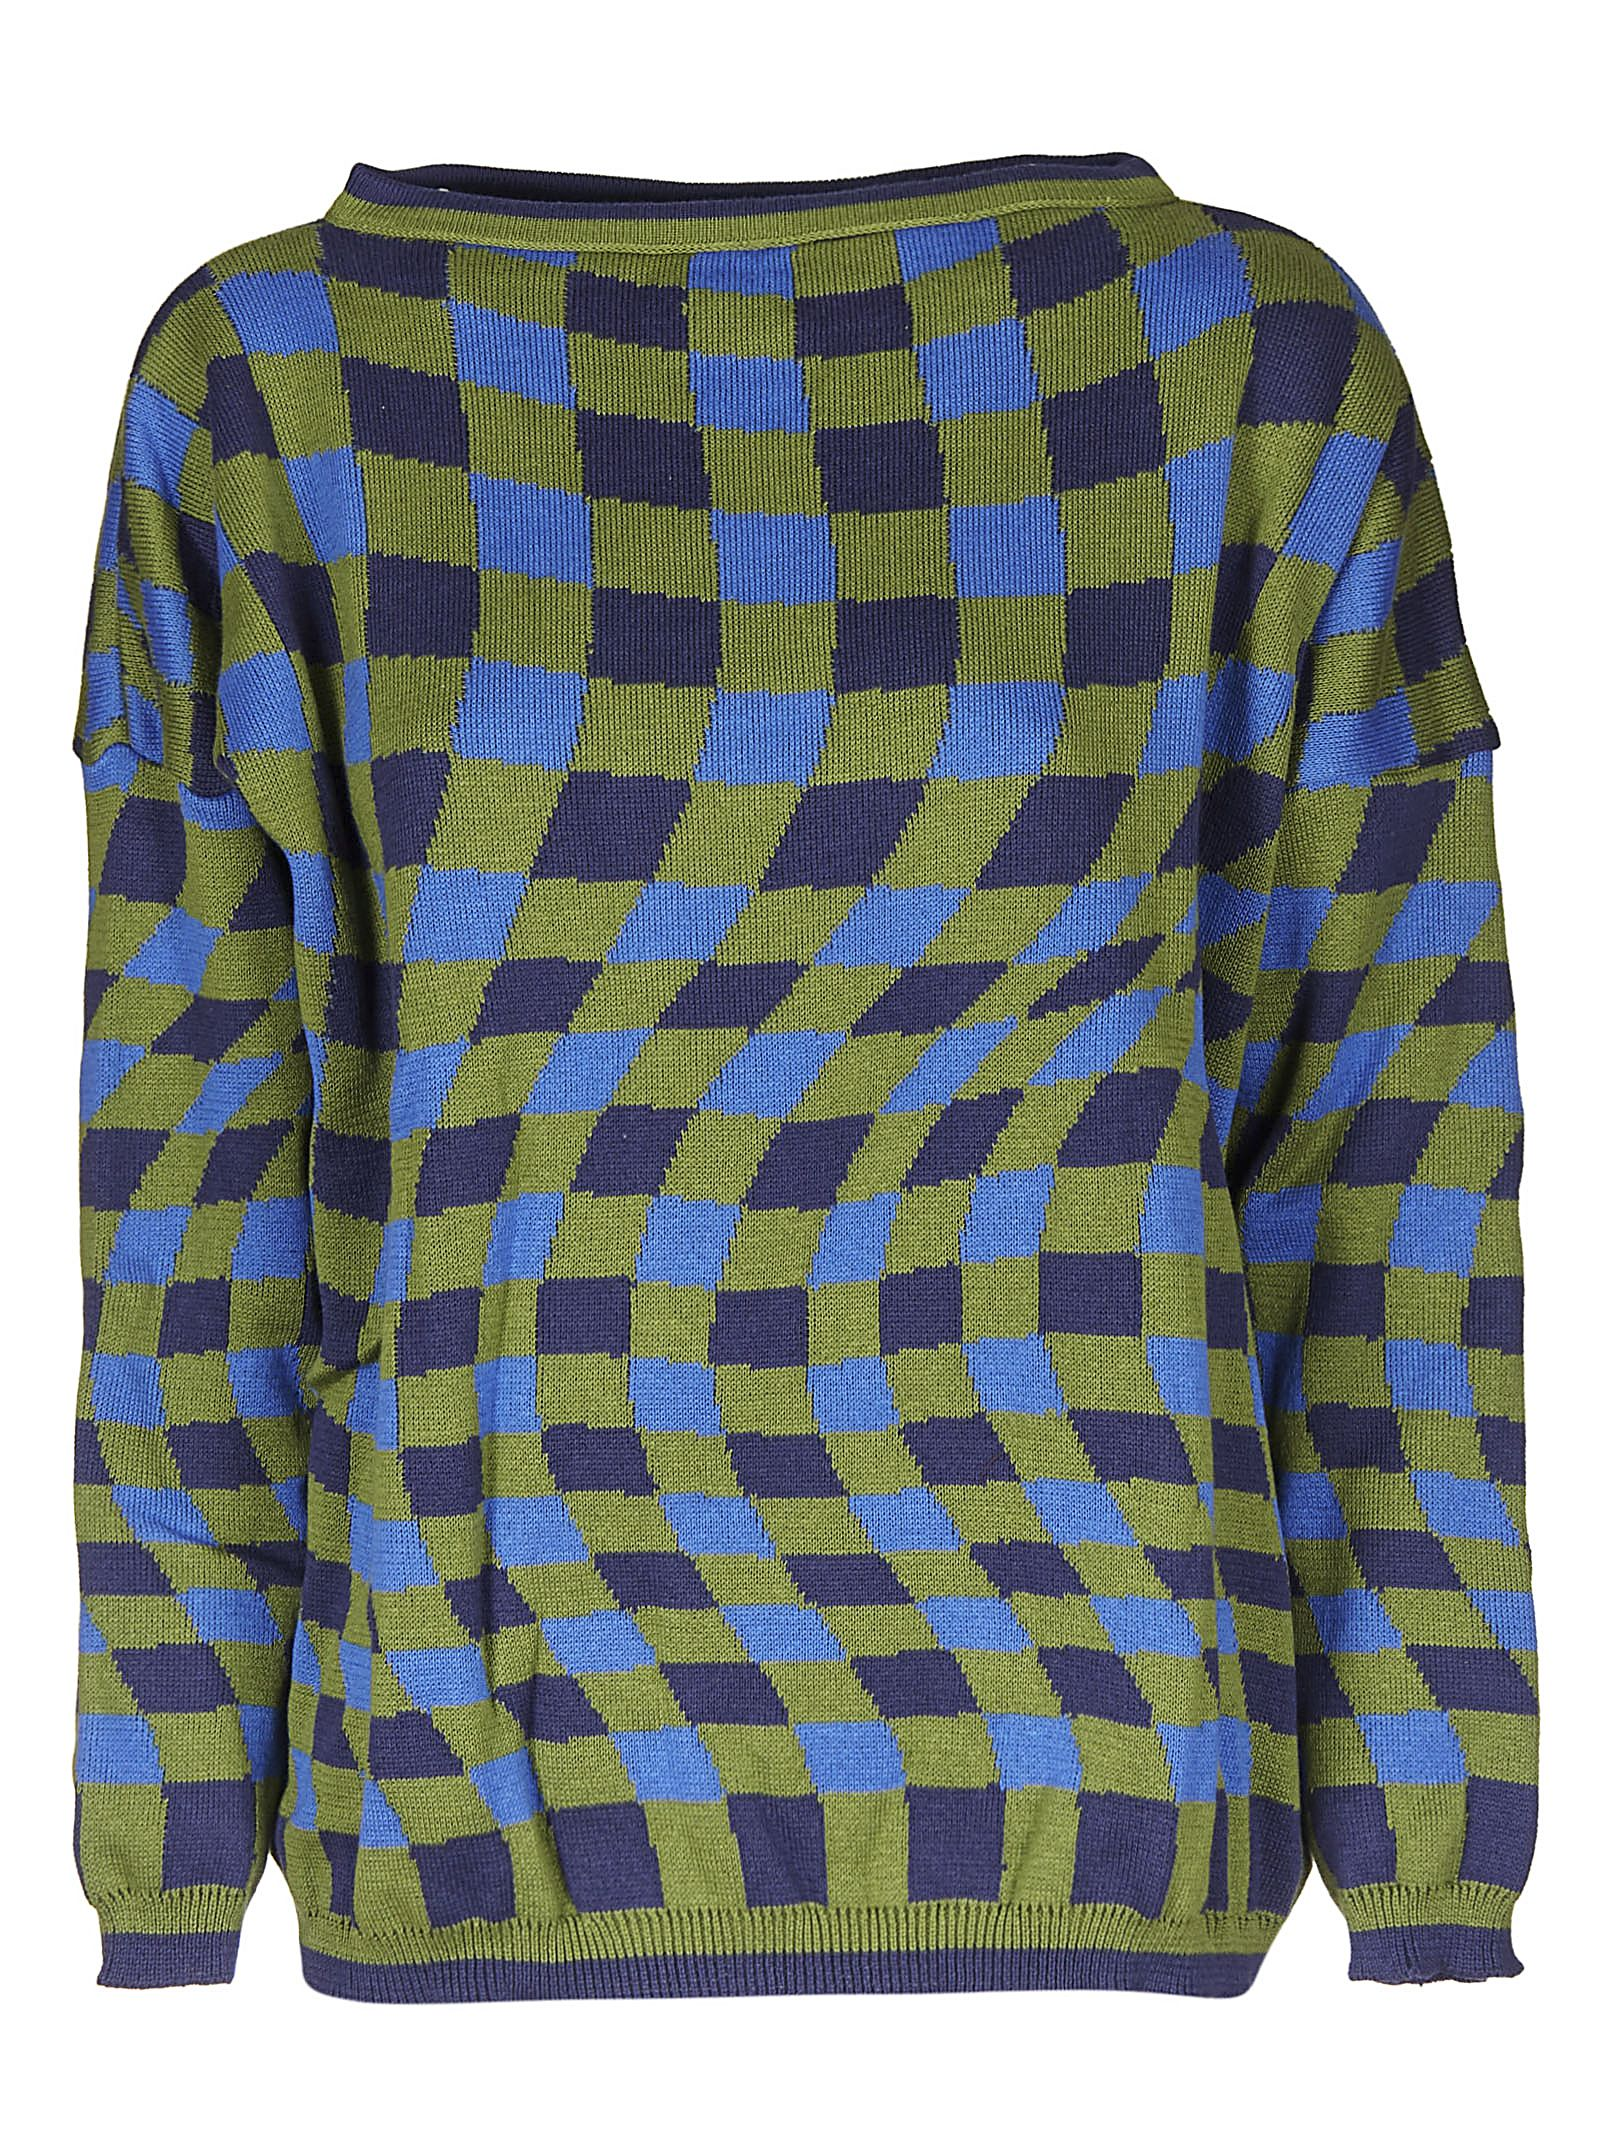 MOLLY GODDARD Checked Sweater in Blue